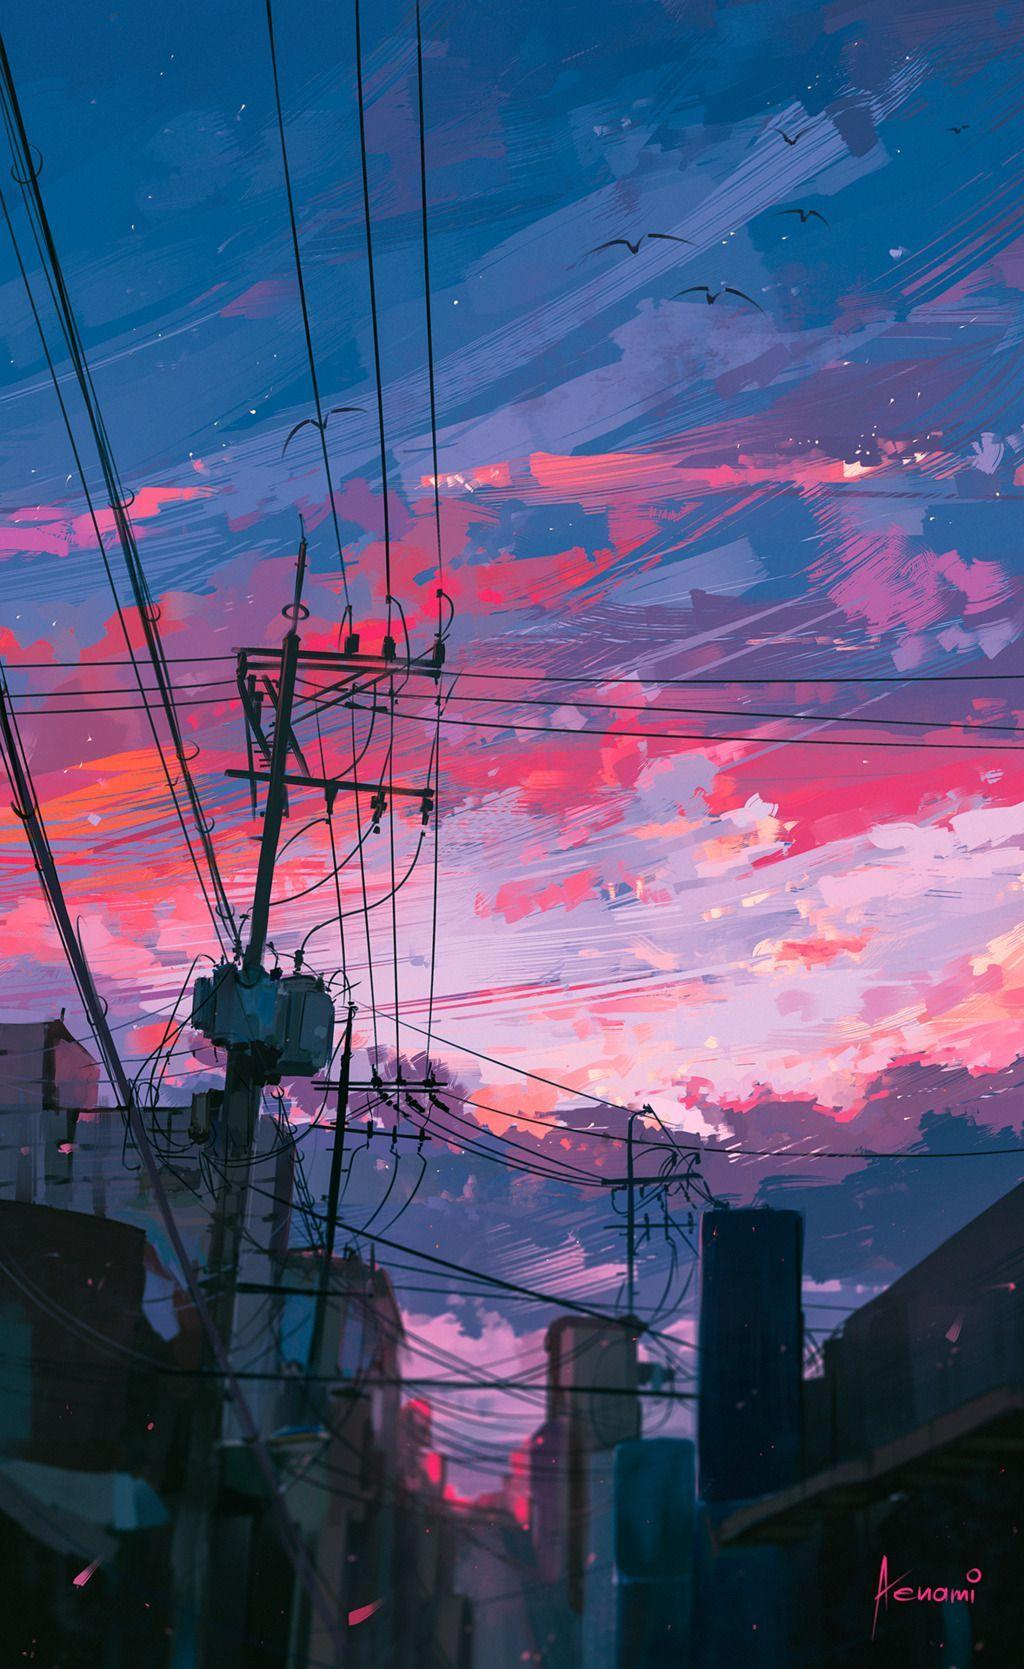 Aesthetic Anime Wallpaper Phone Hd